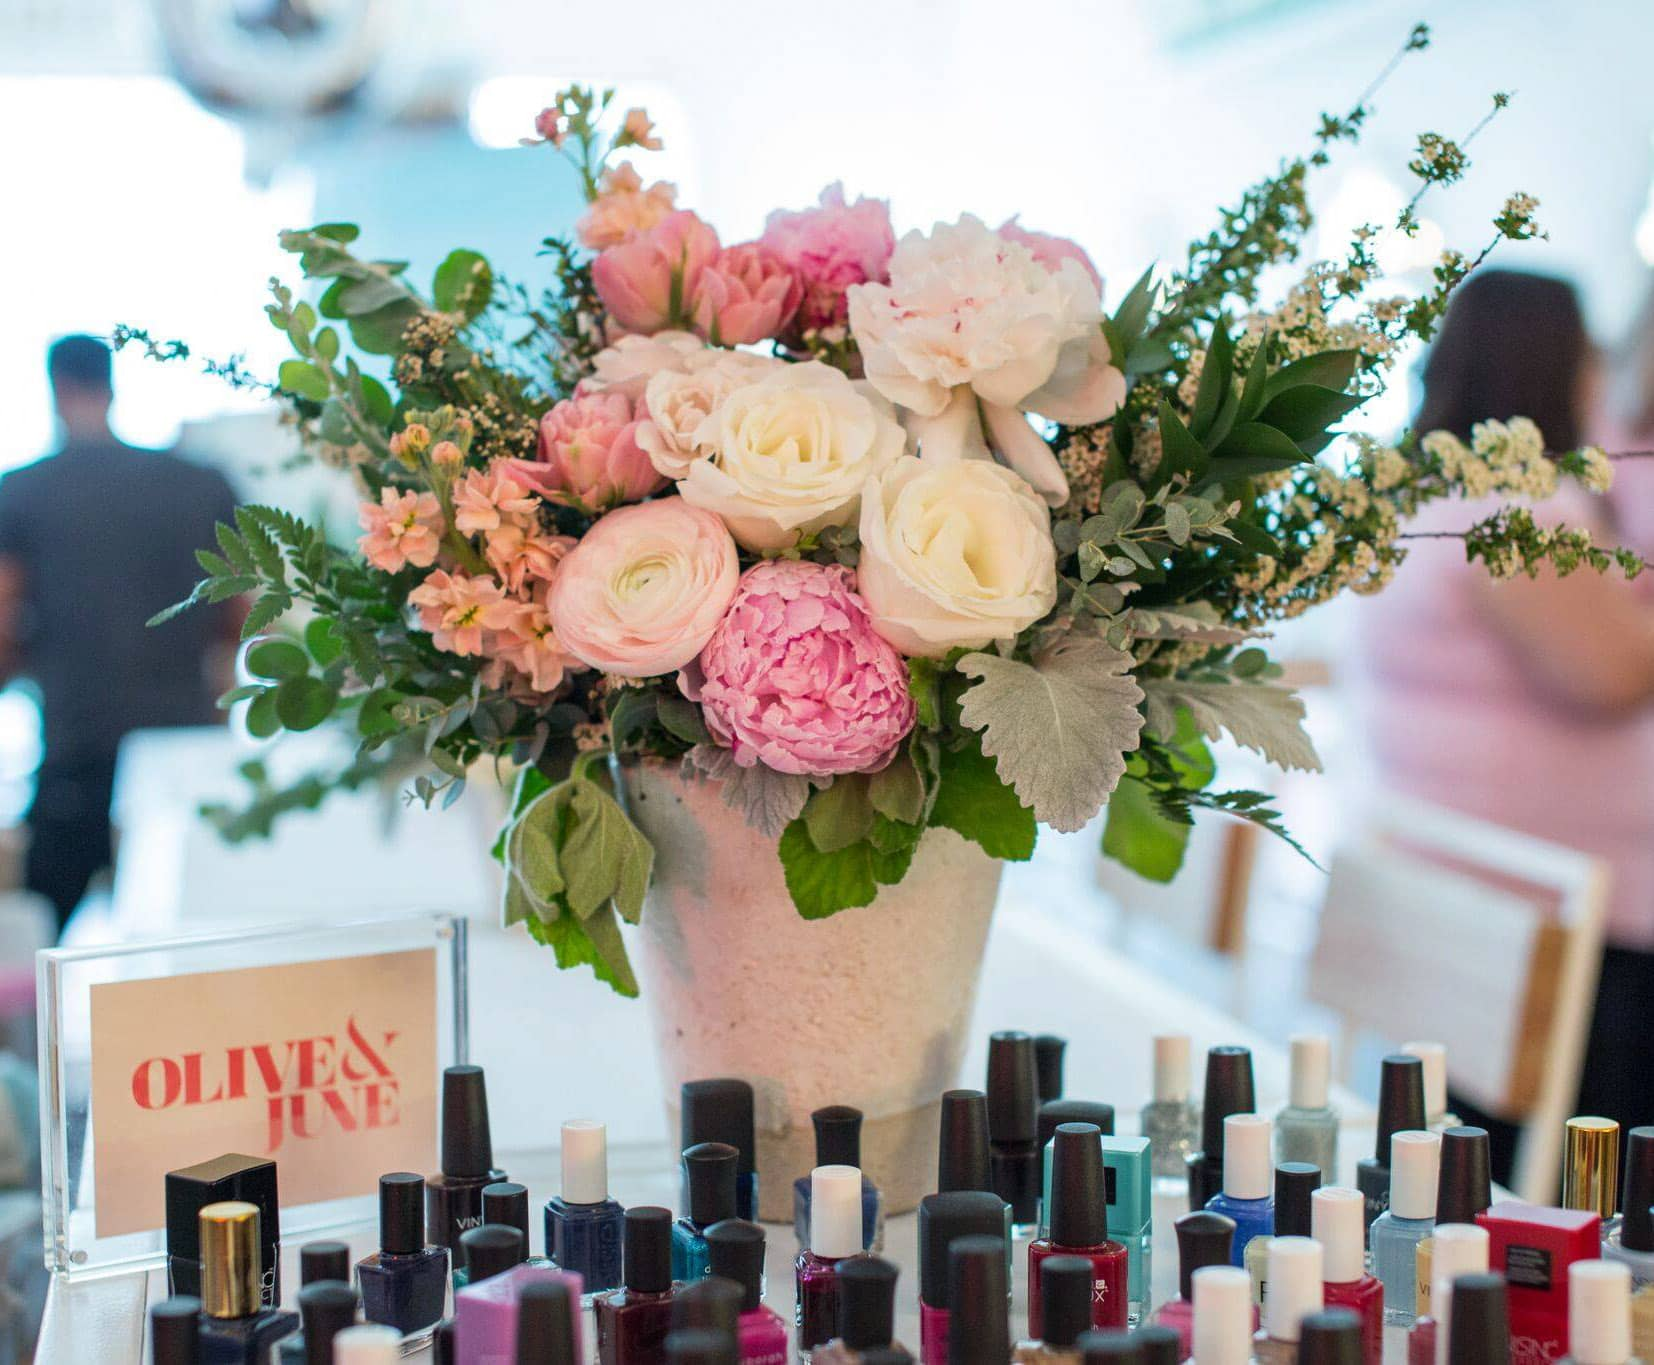 Olive & June display at Create + Cultivate Los Angeles 2016| Click through to read a full onference recap + review | Beauty and Style Blogger Ashley Brooke Nicholas